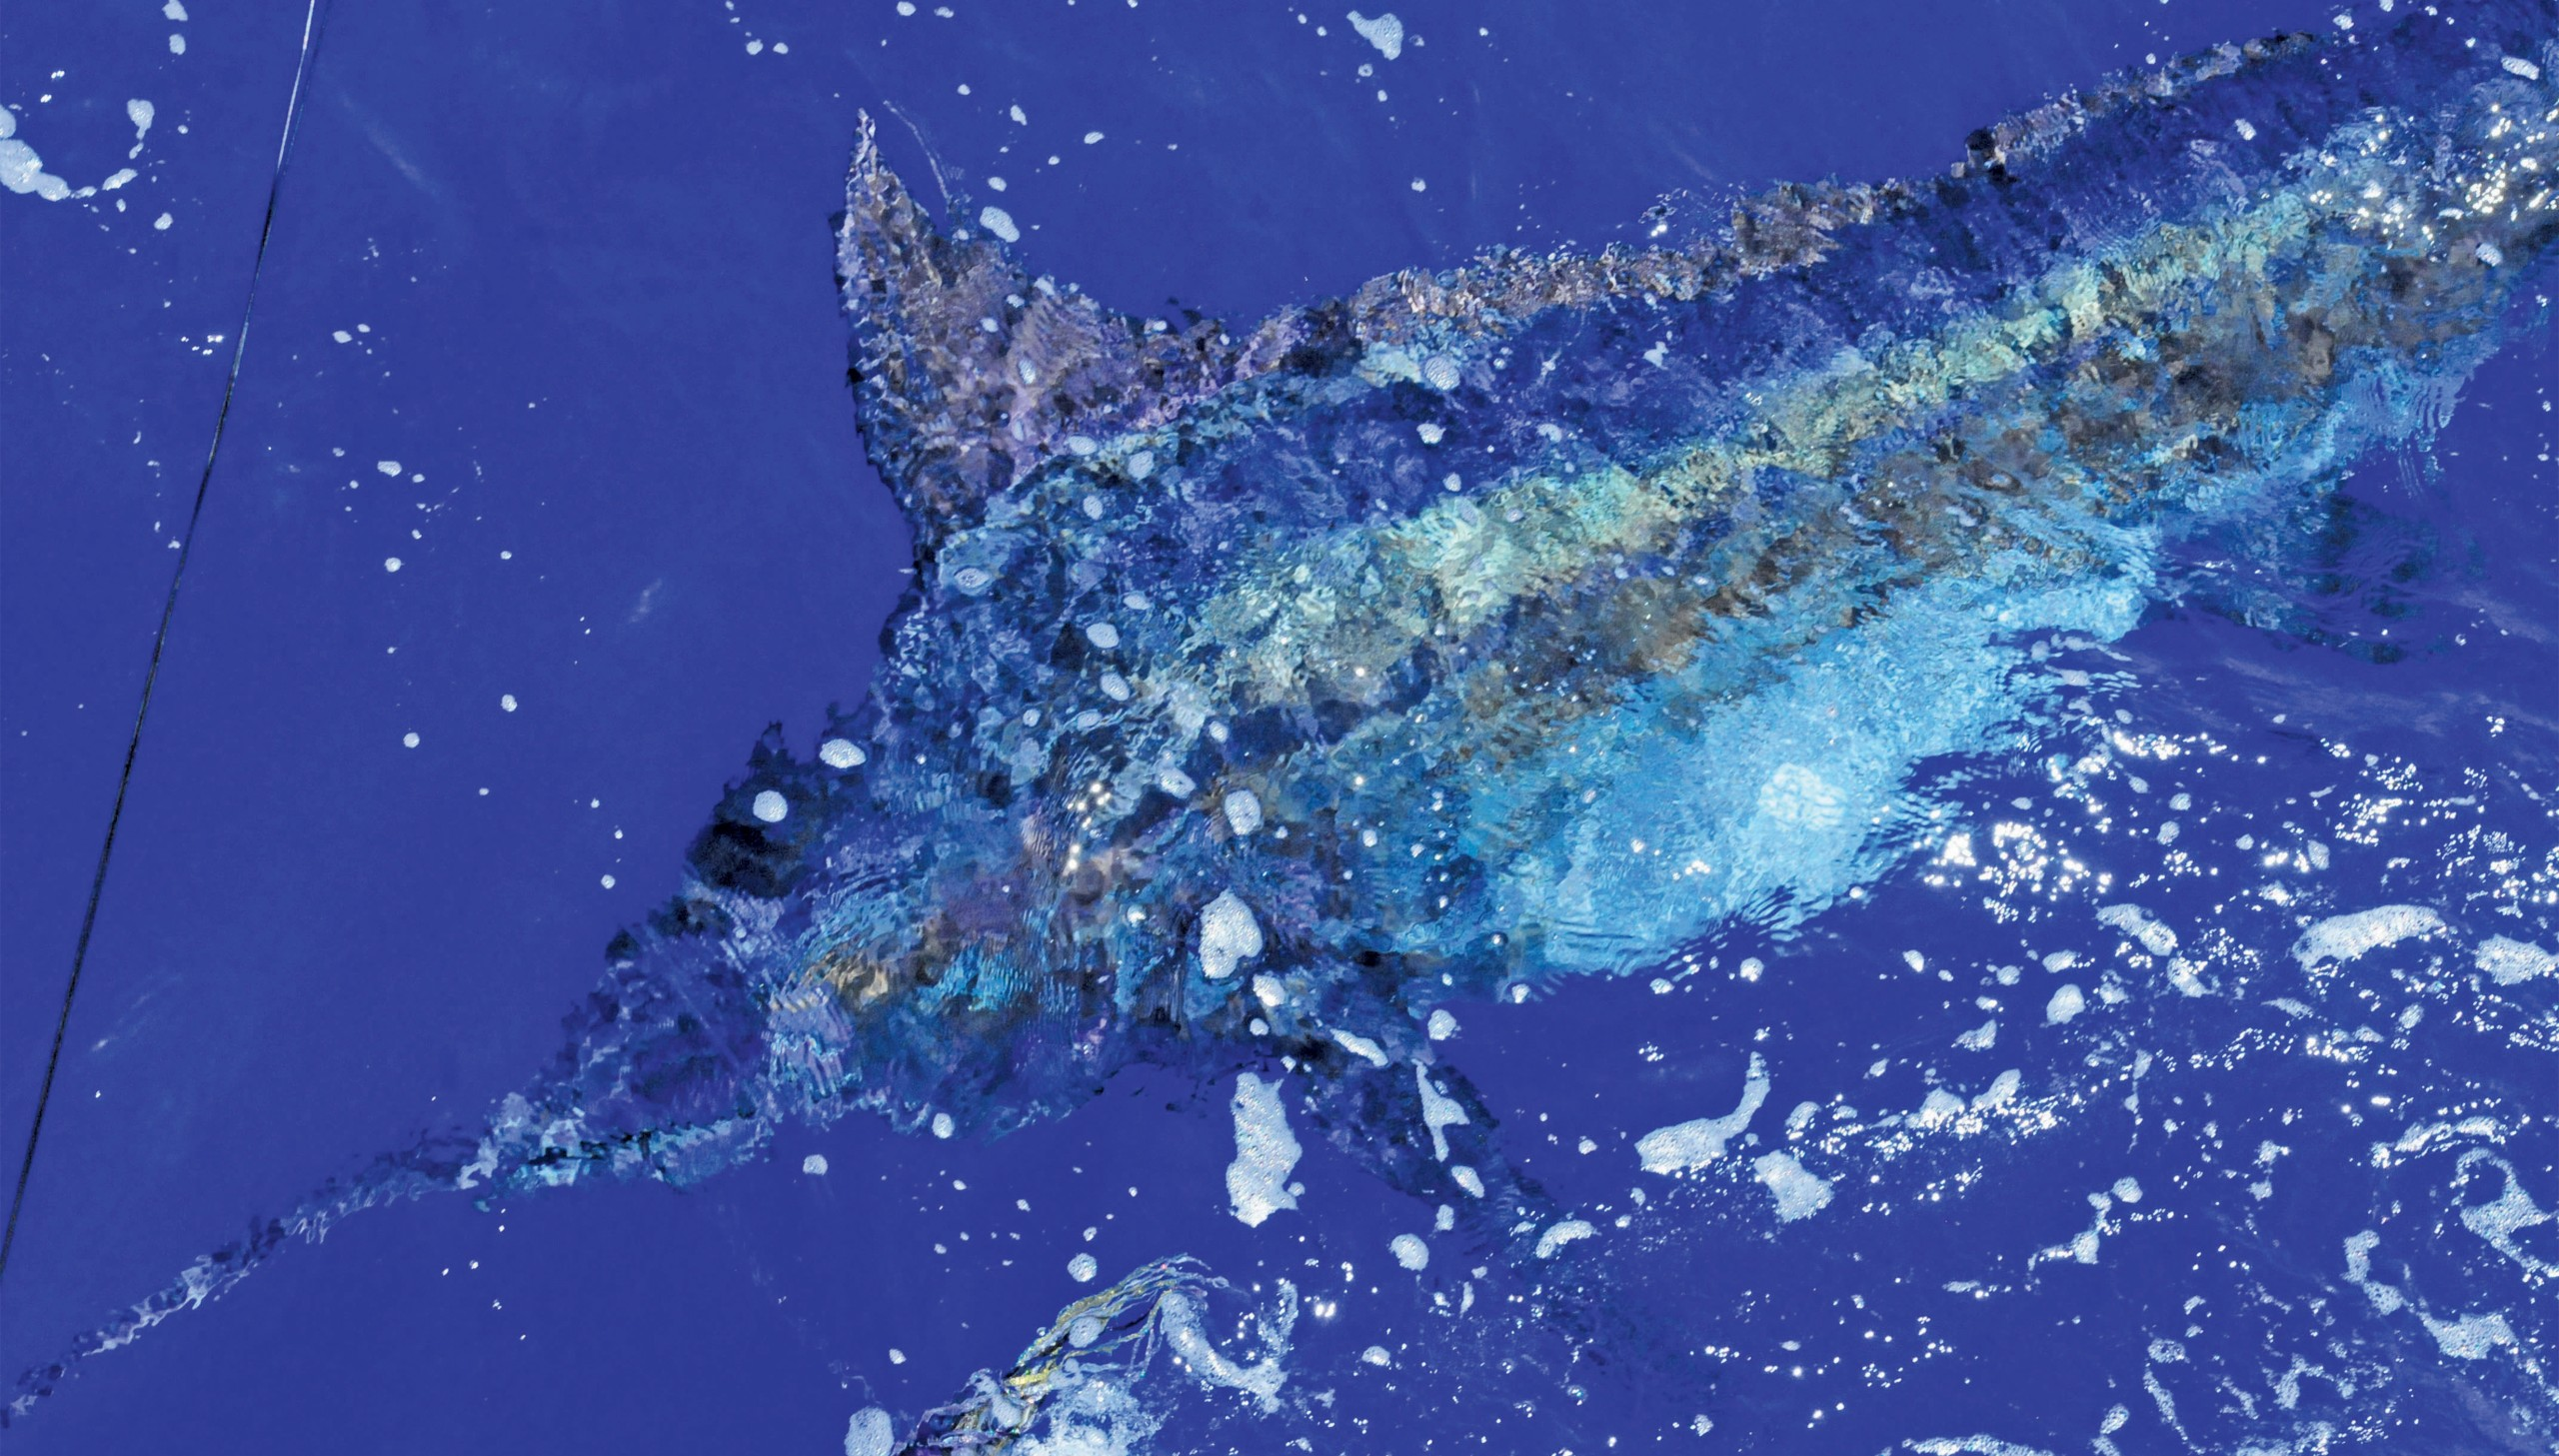 blue marlin under the water